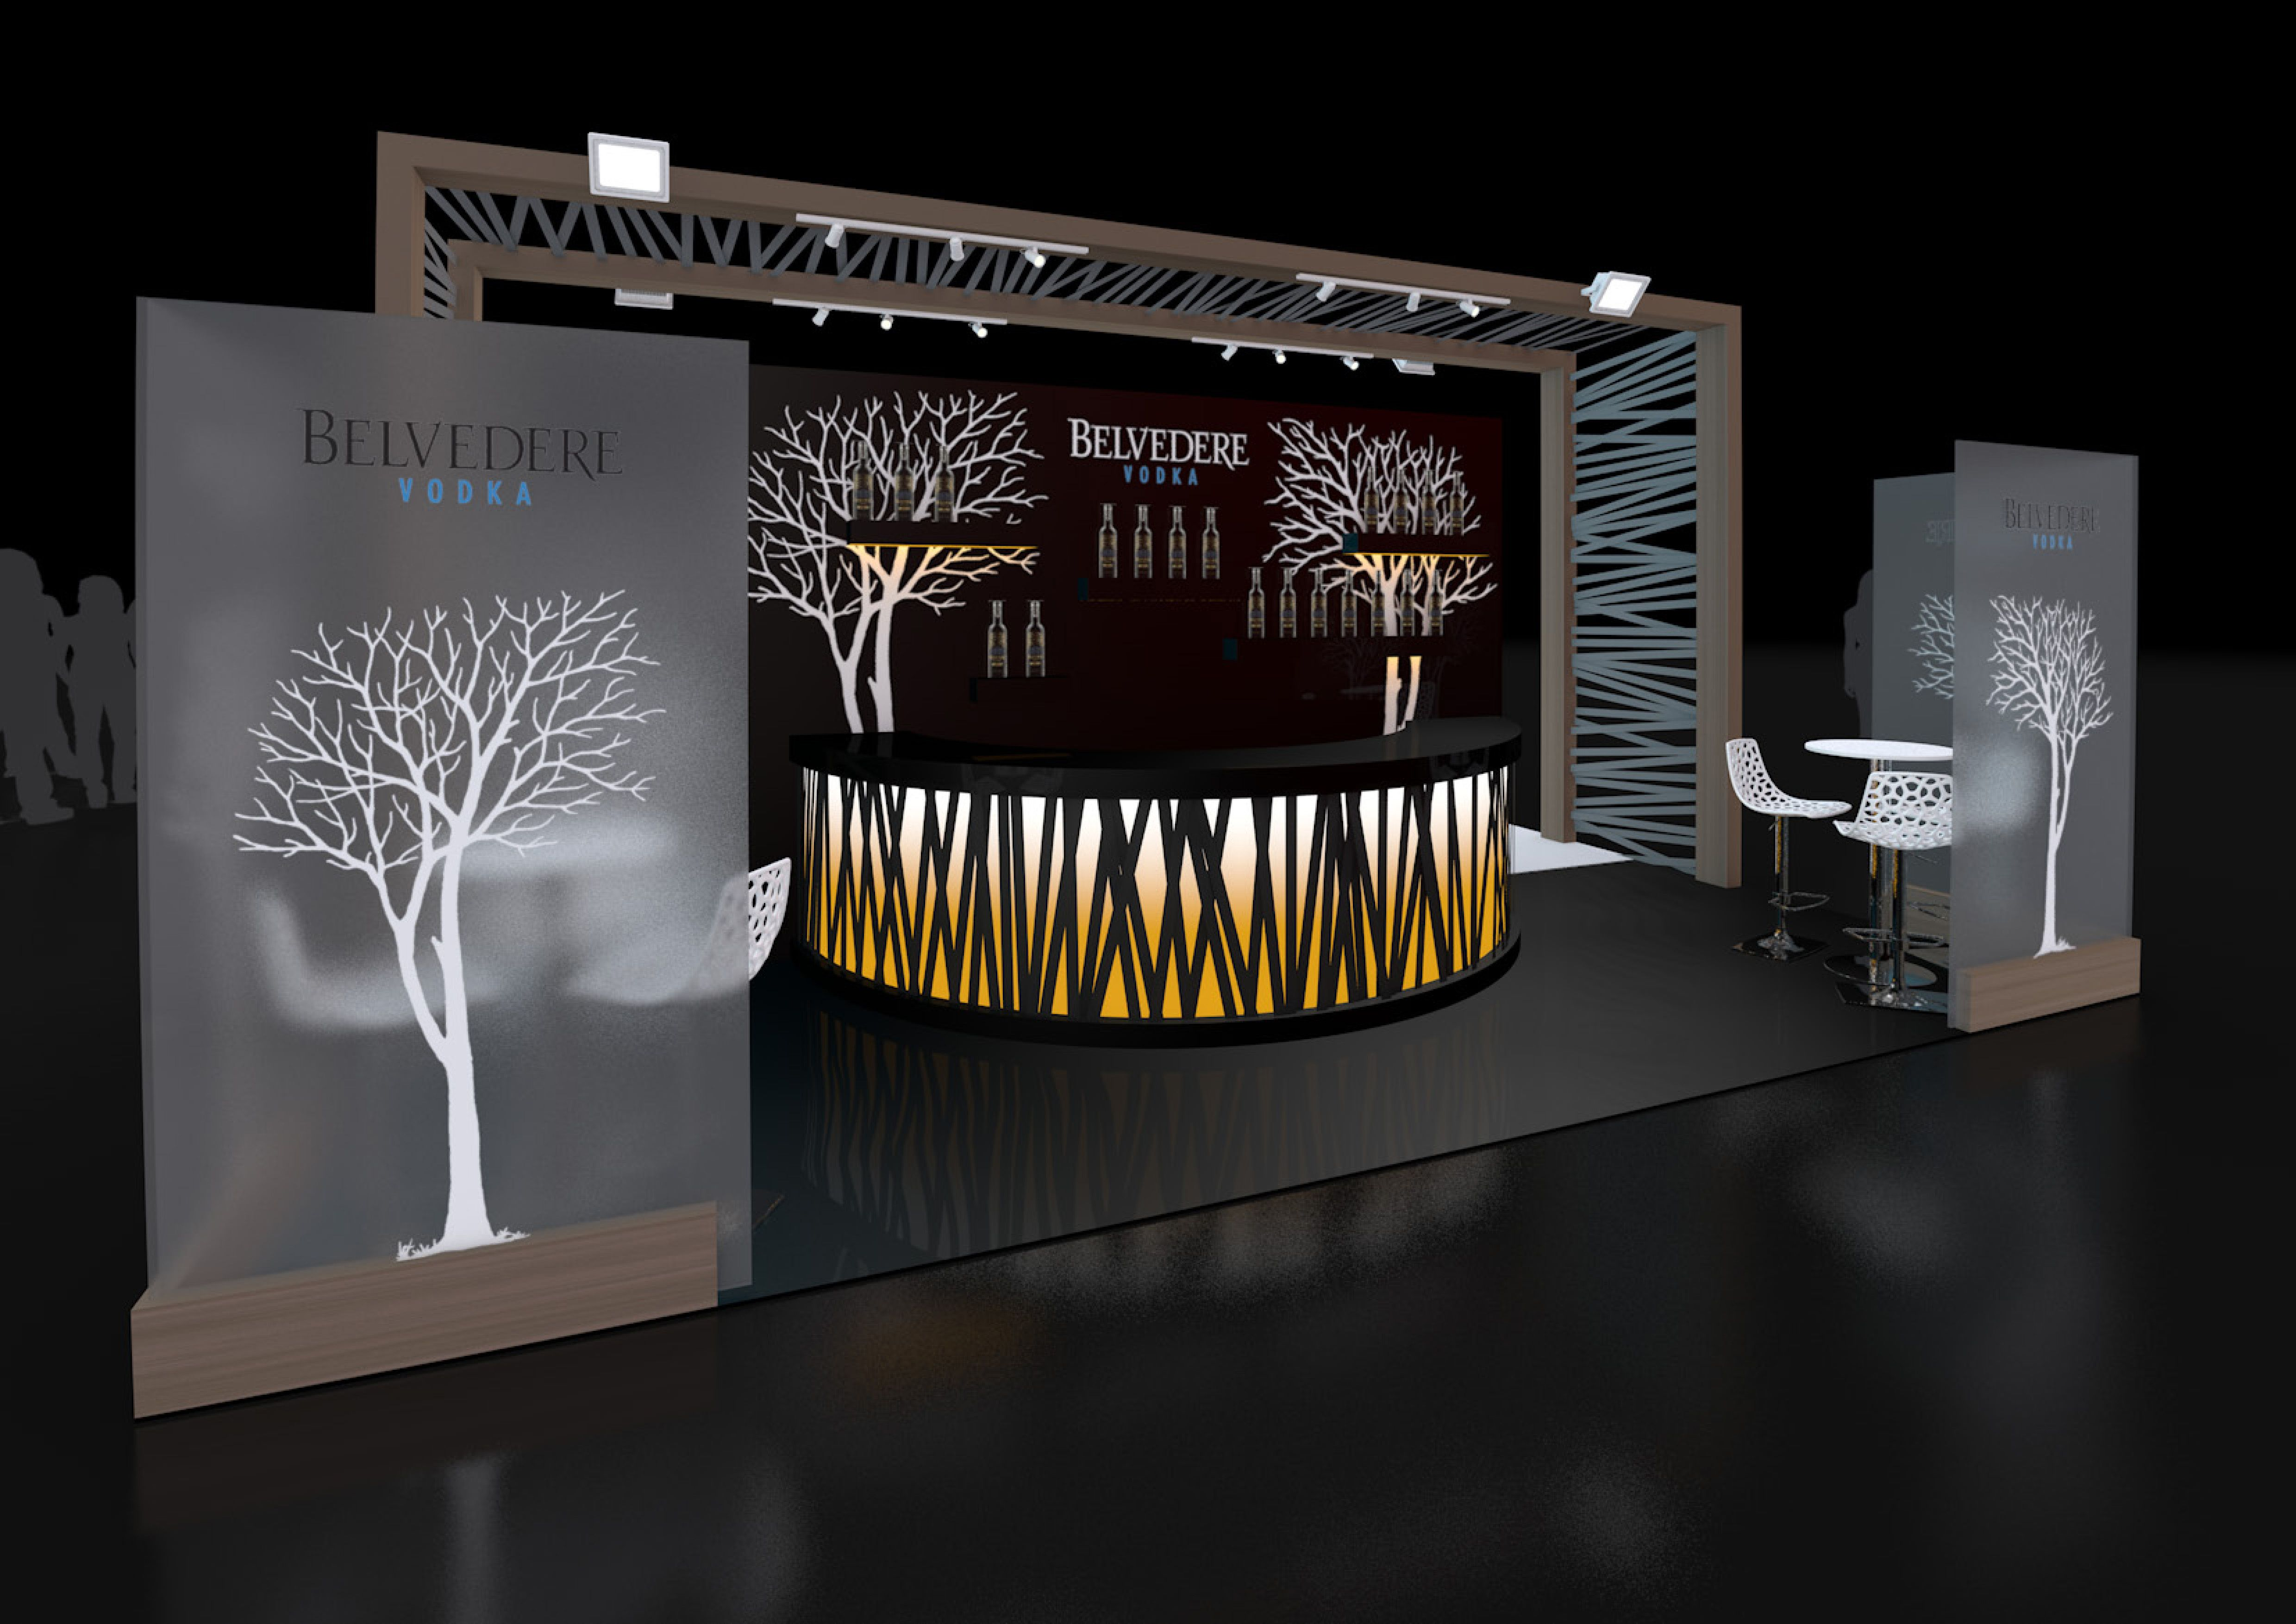 Exhibition Stand Design Stand Design Created For Belvedere Vodka For Their Upcoming Exhibition At Imbibe Exhibition Stand Design Stand Design Exibition Design